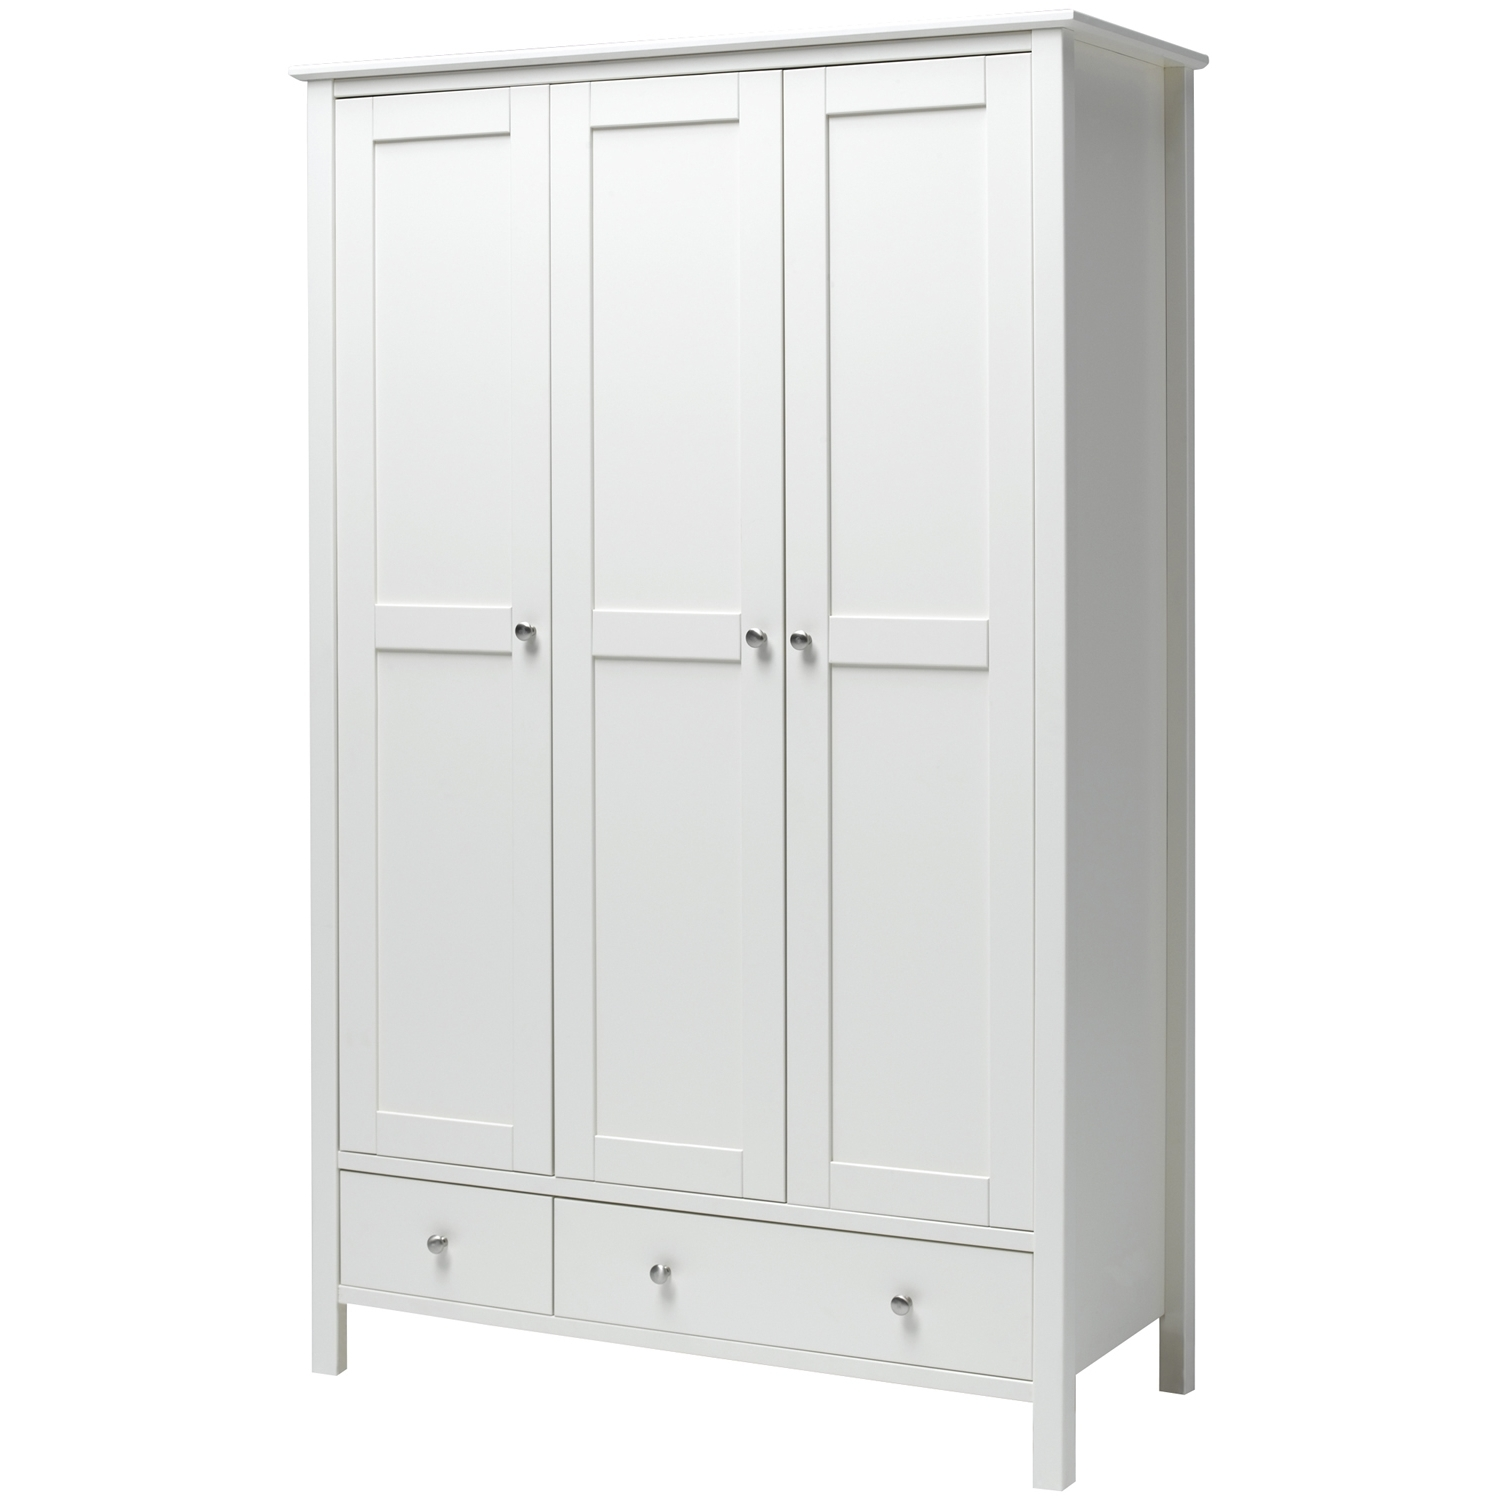 Most Recent White 3 Door Wardrobes Pertaining To Stockholm 3 Door 2 Drawer Wardrobe White – Simply Furniture (View 4 of 15)